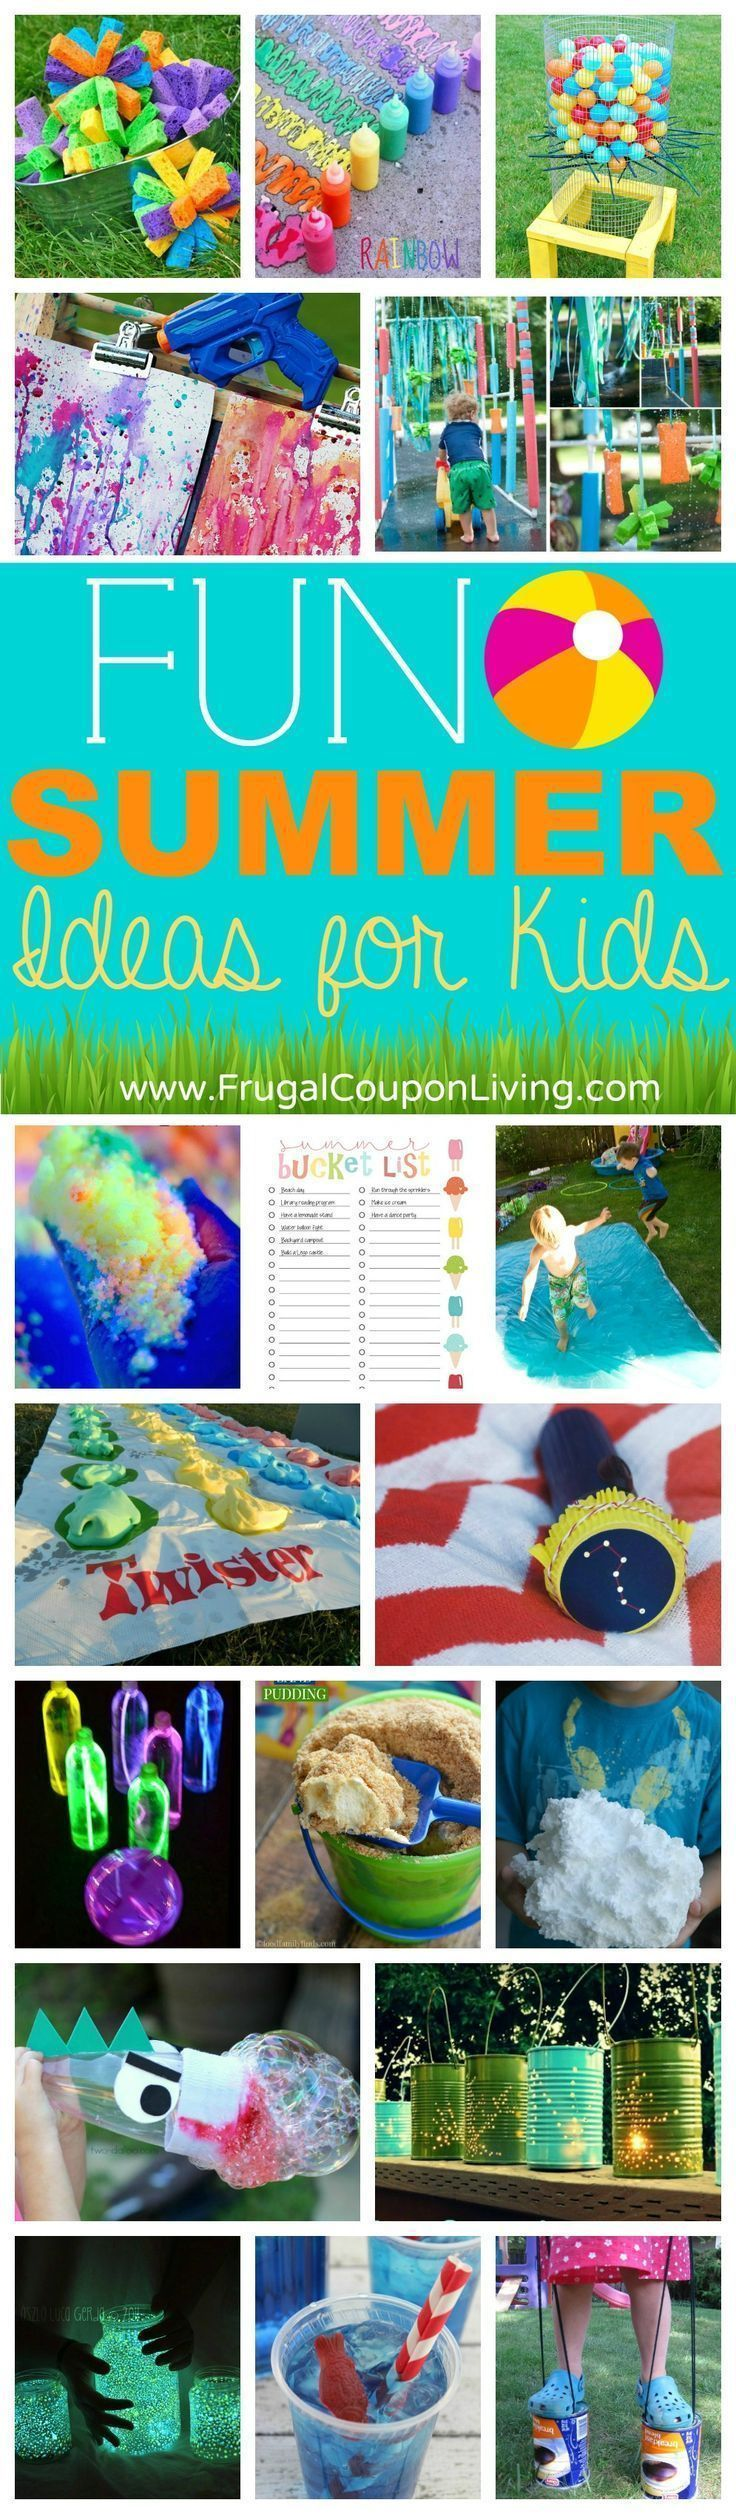 68 best kid projects/activities images on Pinterest | Day care ...